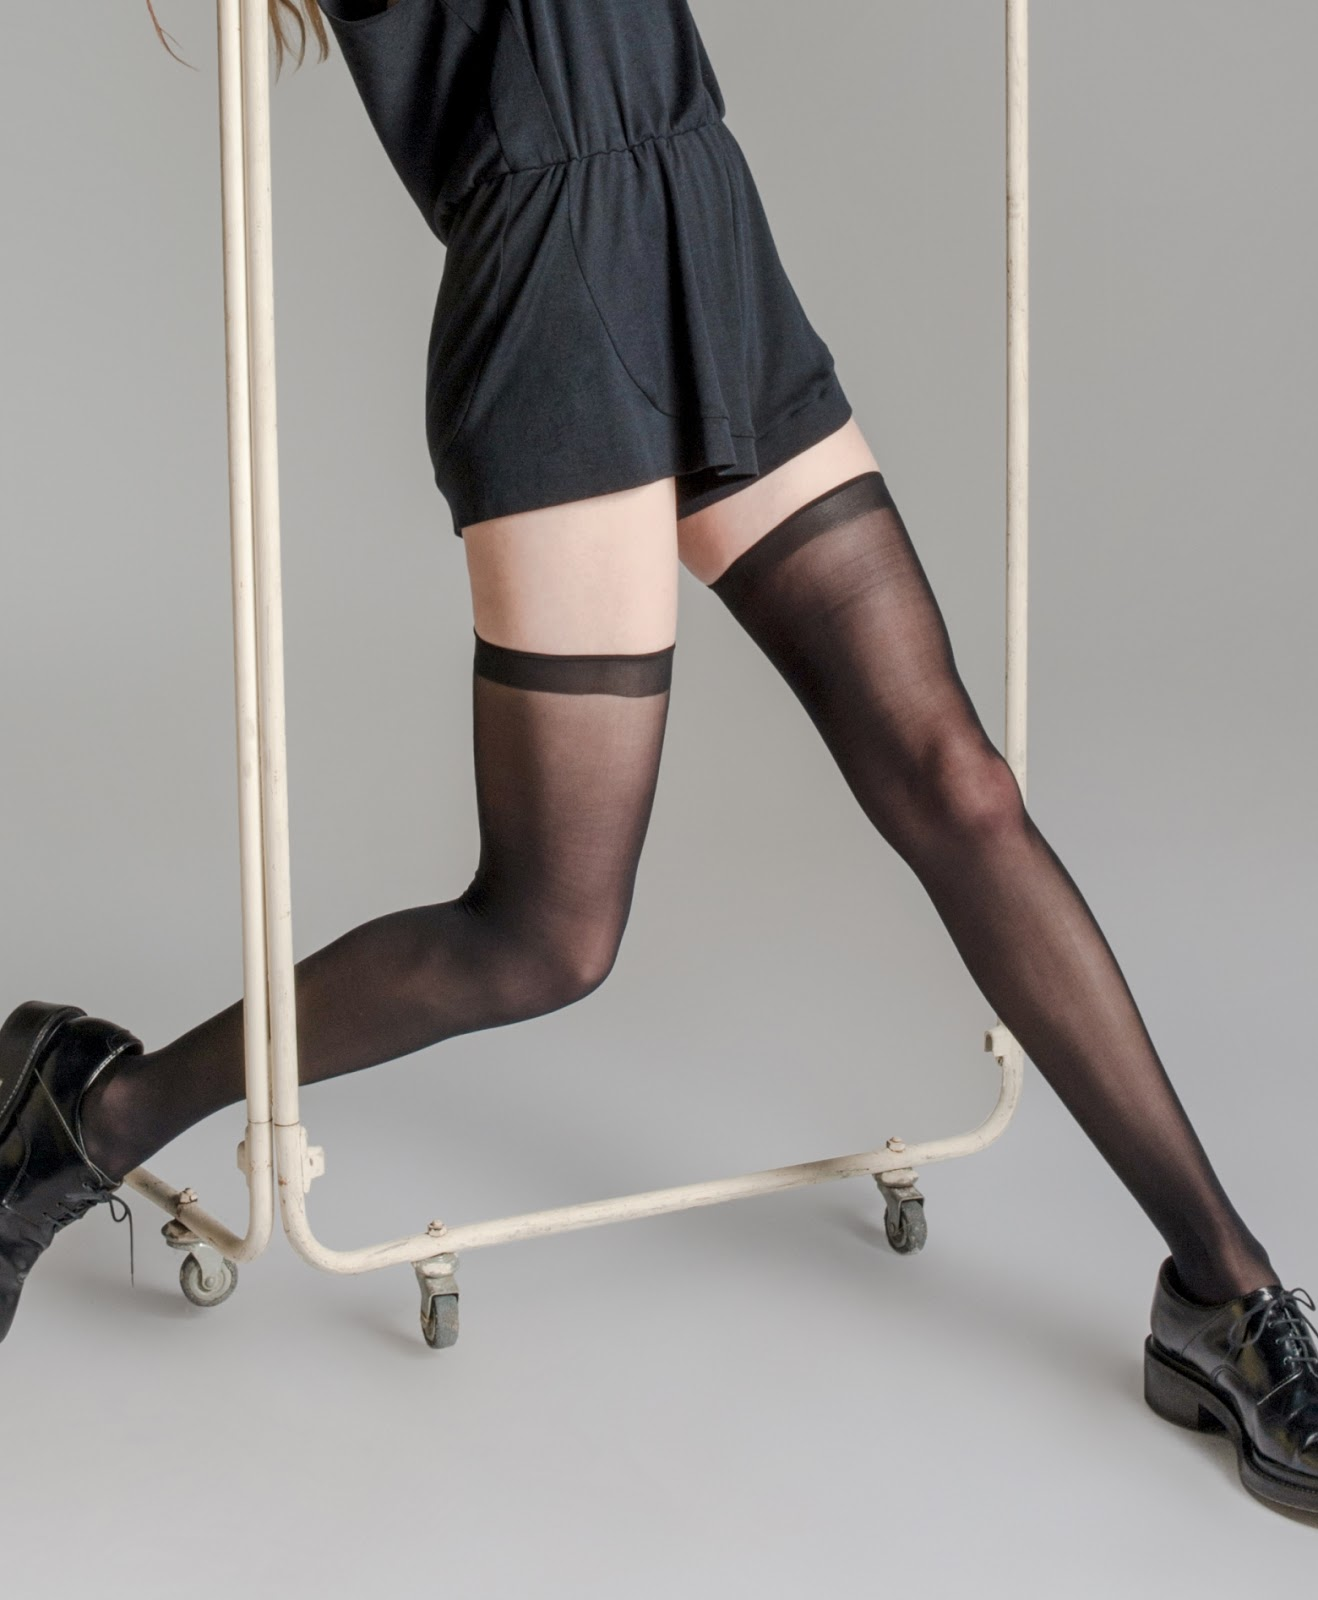 2 Foolproof Ways to Keep Your Thigh-High Stockings From Slipping